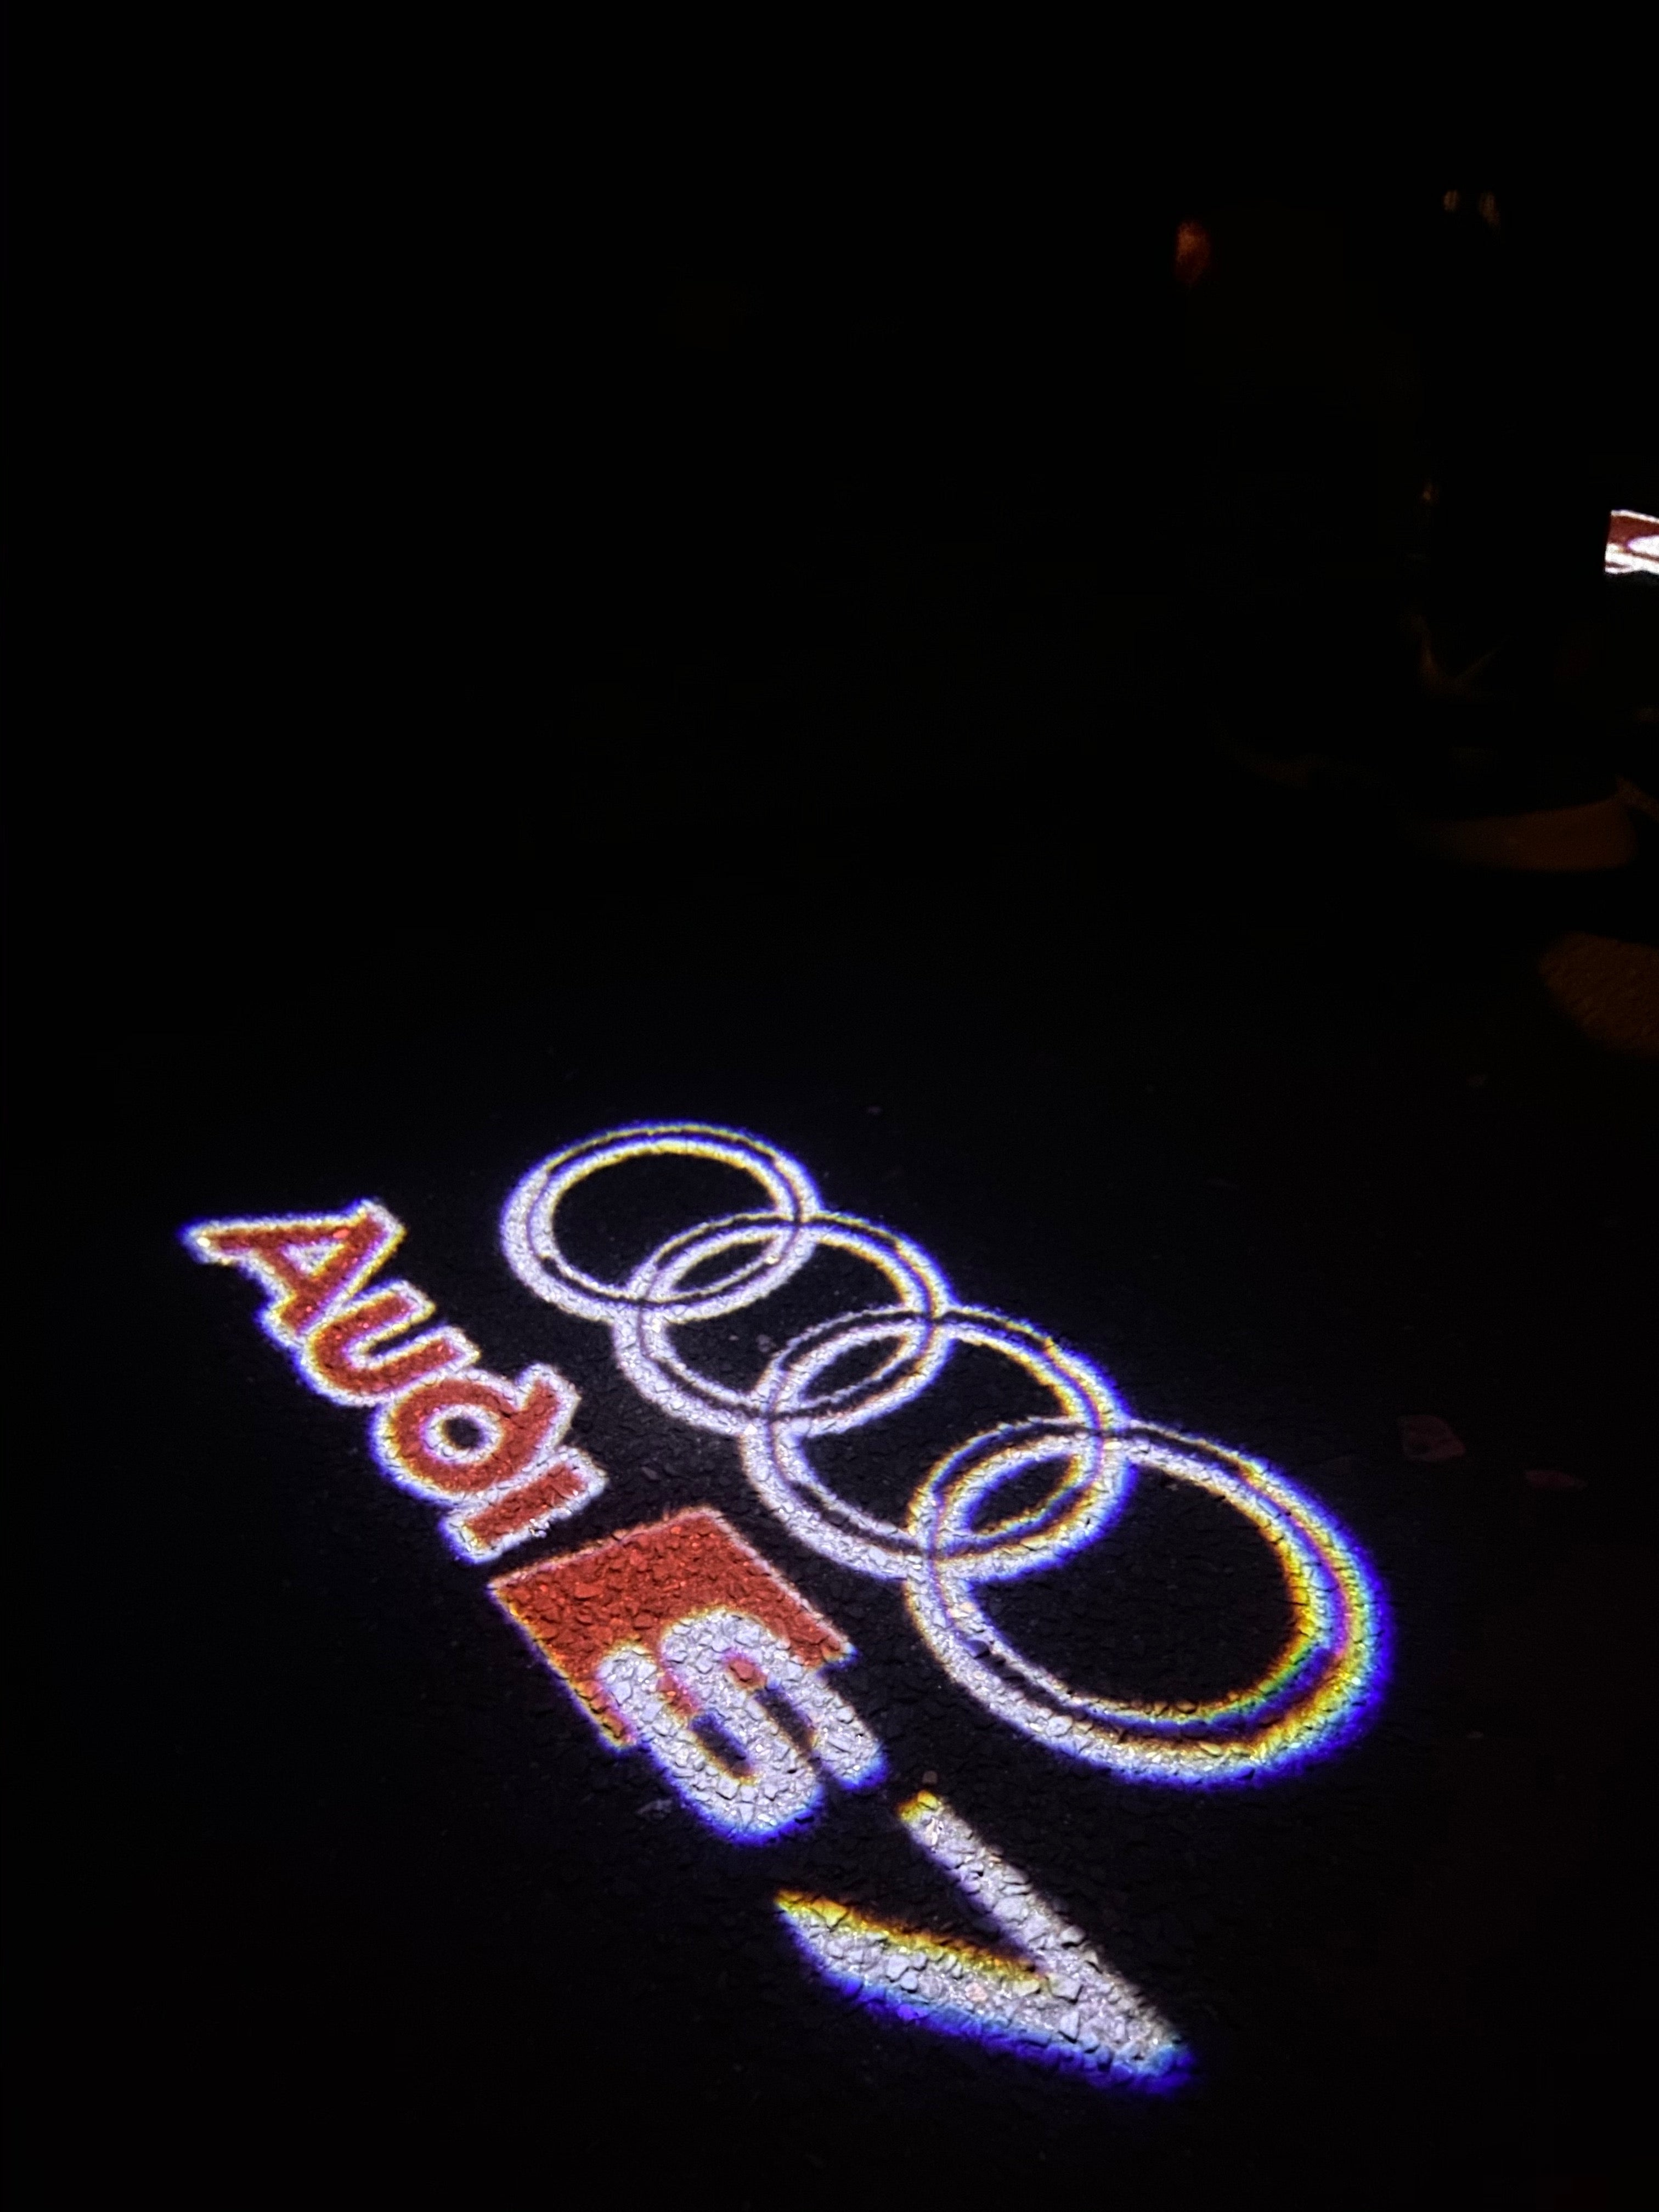 AUDI  LOGO PROJECTOT LIGHTS Nr.37  (quantity 1 = 2 Logo Films /2 door lights)